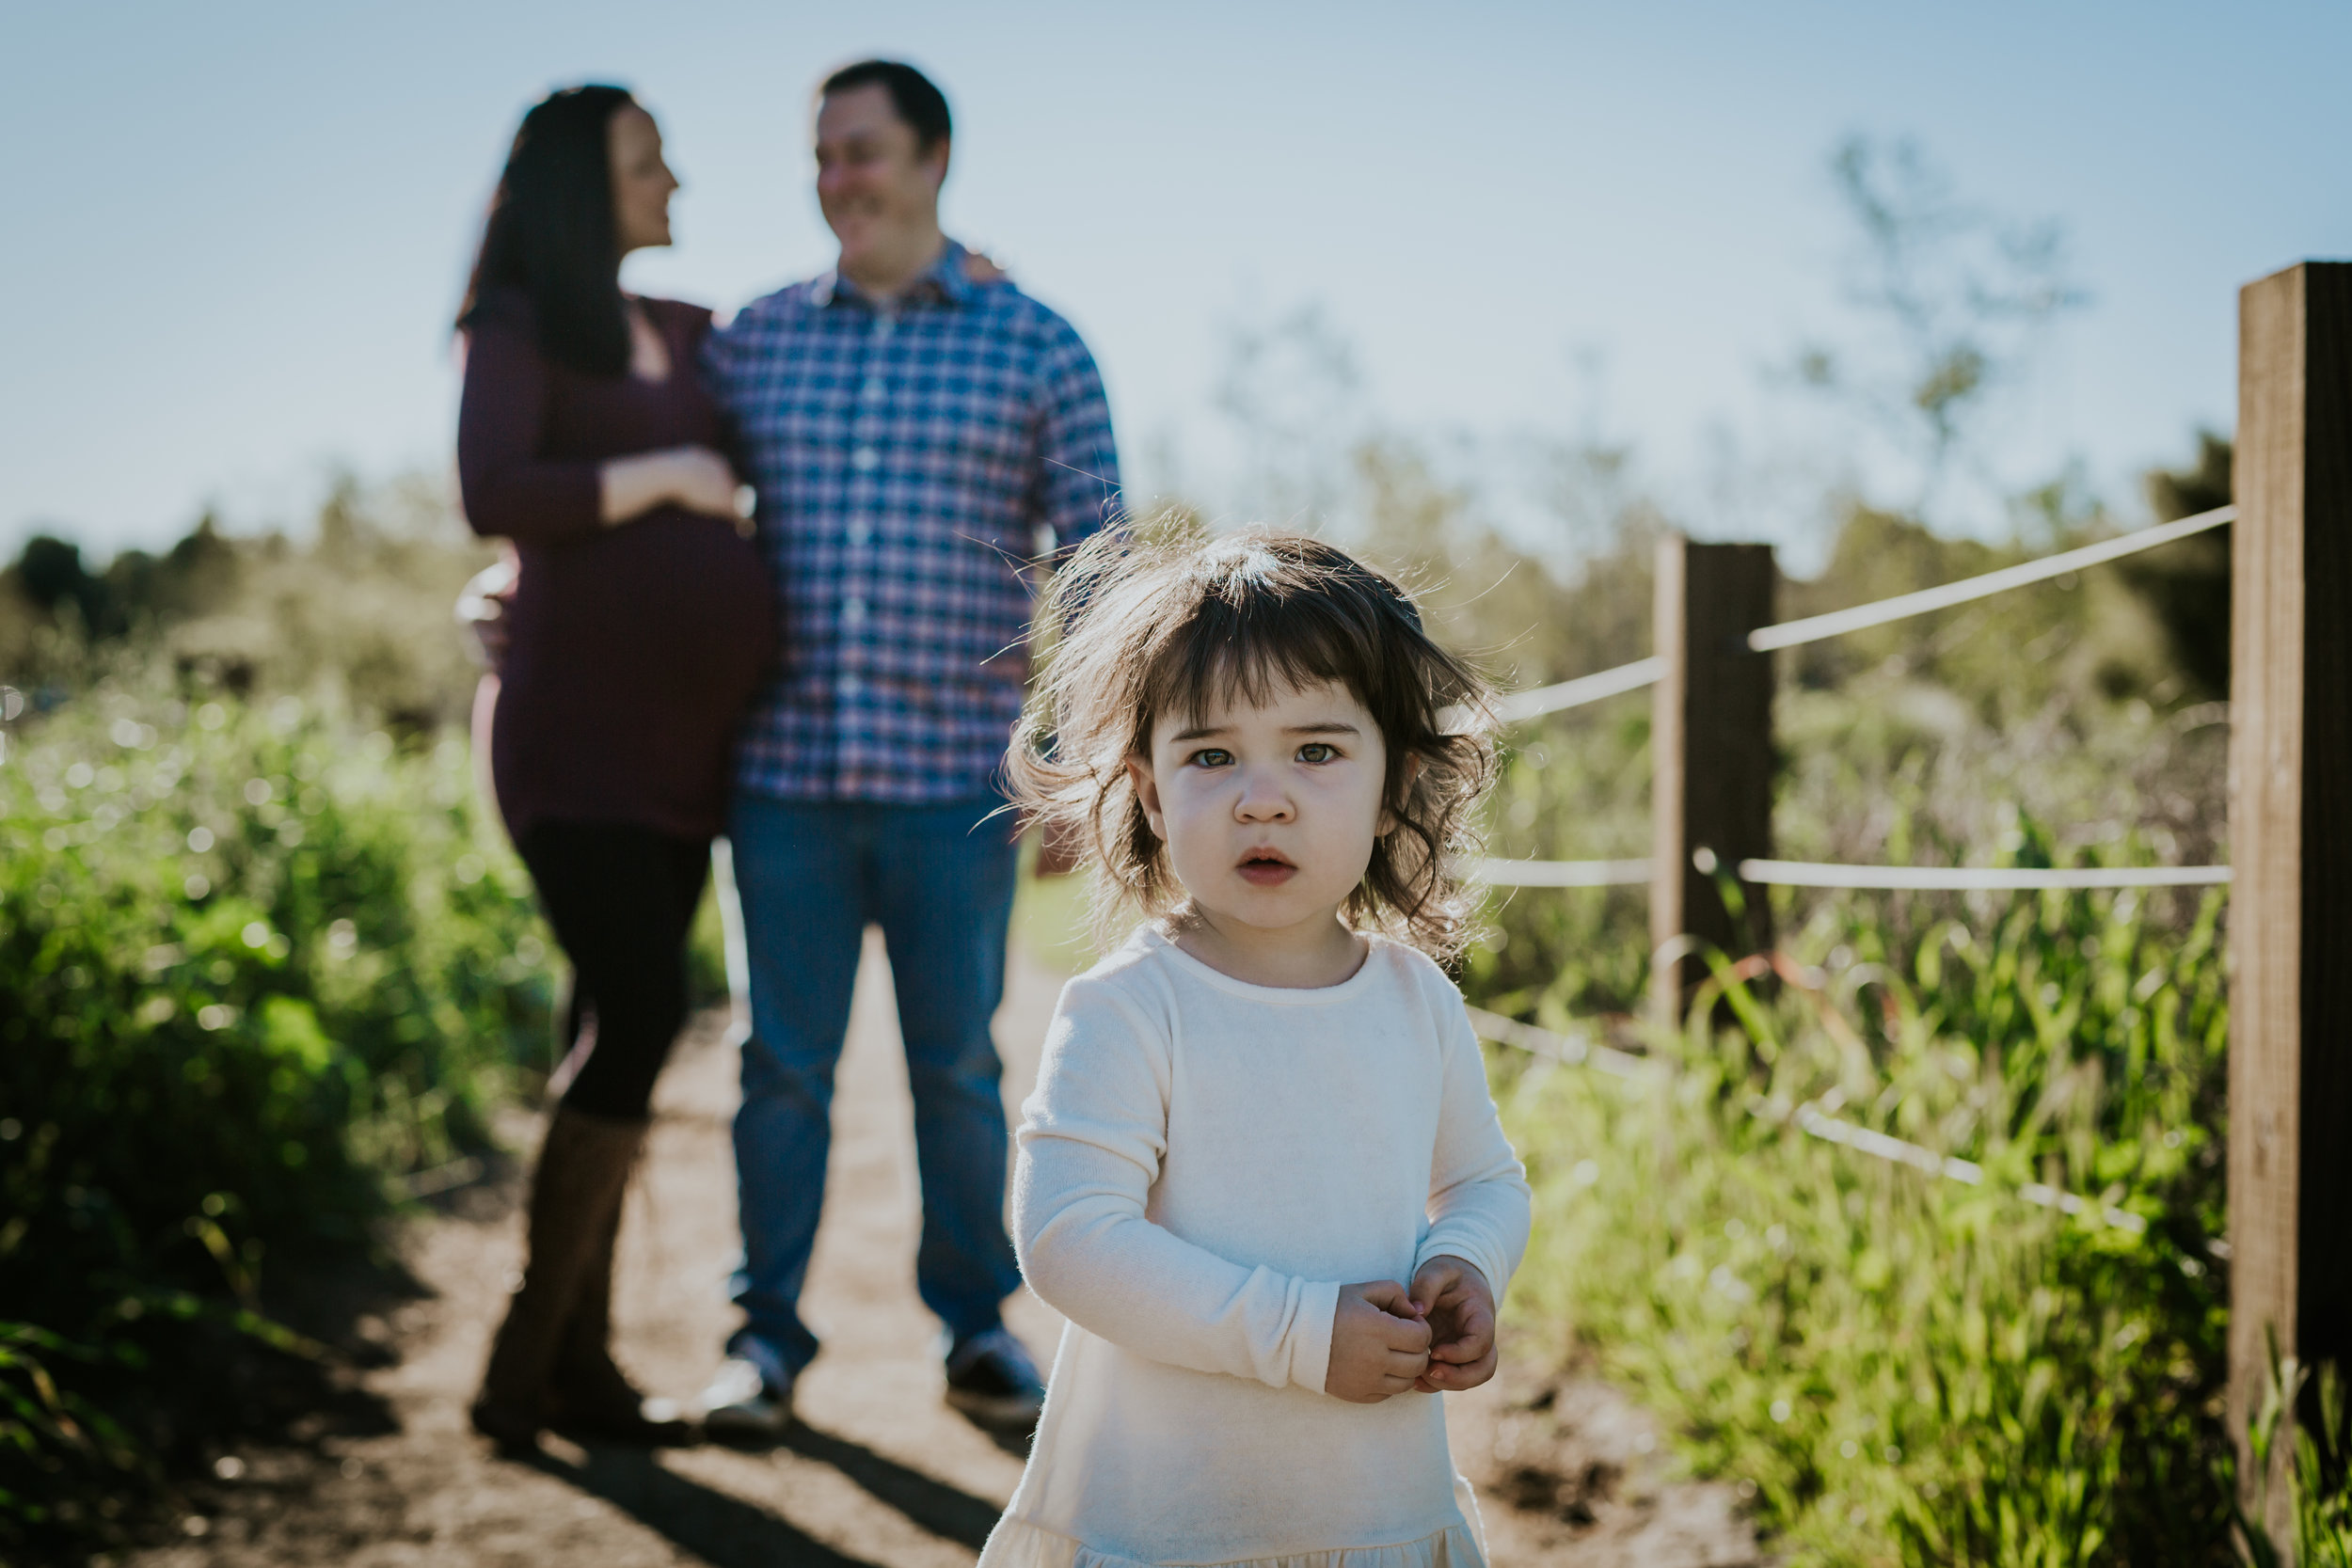 Orange County family photographer. Pregnant mom and dad stand with young toddler daughter during maternity photo shoot among bright green fields at Quail Hill Irvine